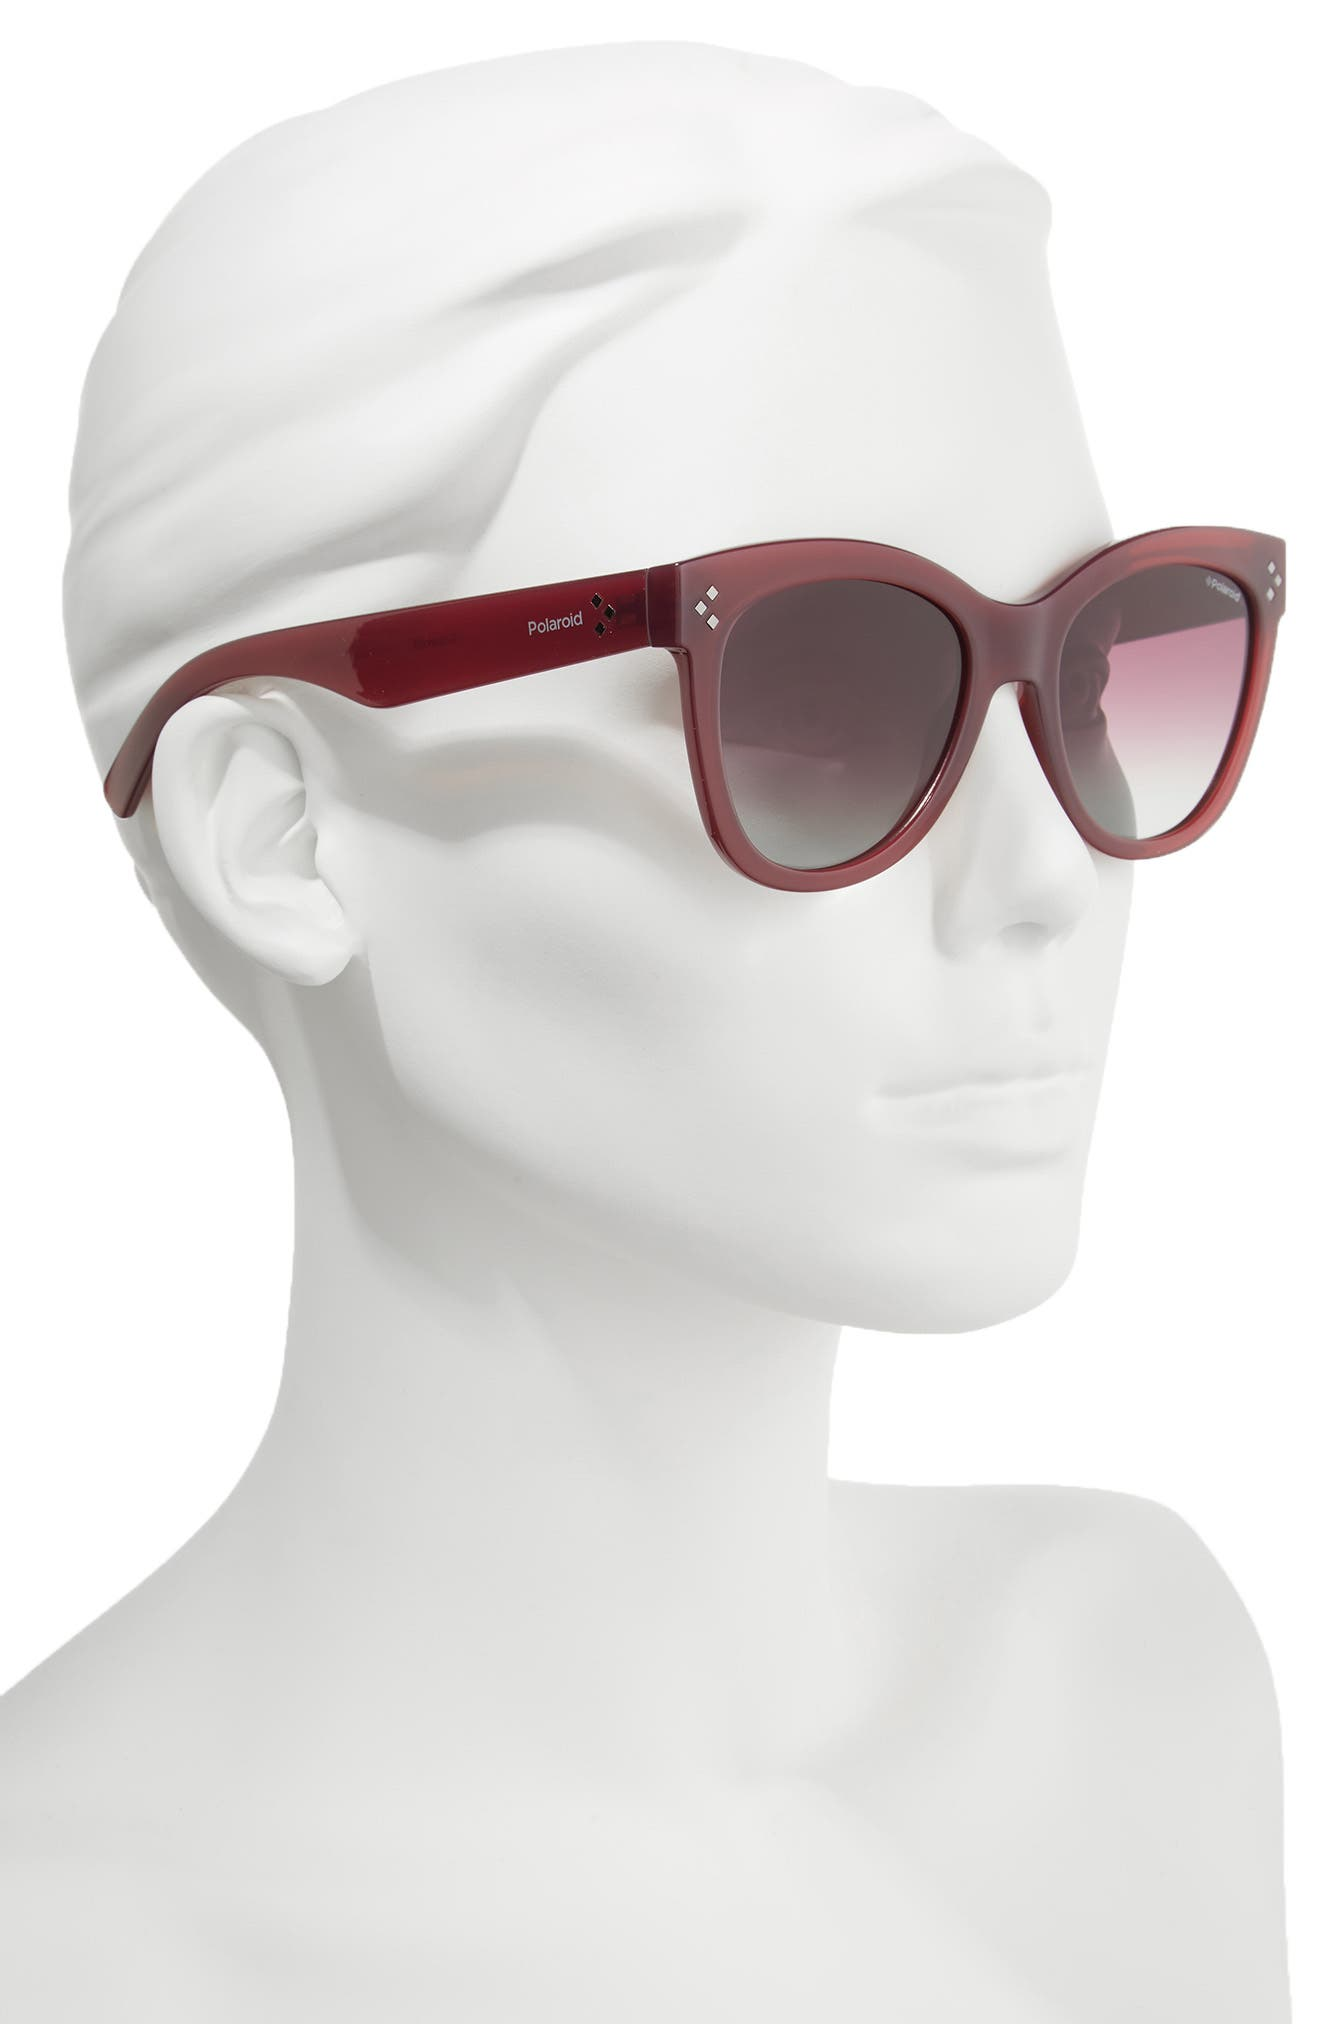 Polaroid 54mm Polarized Sunglasses,                             Alternate thumbnail 2, color,                             RED